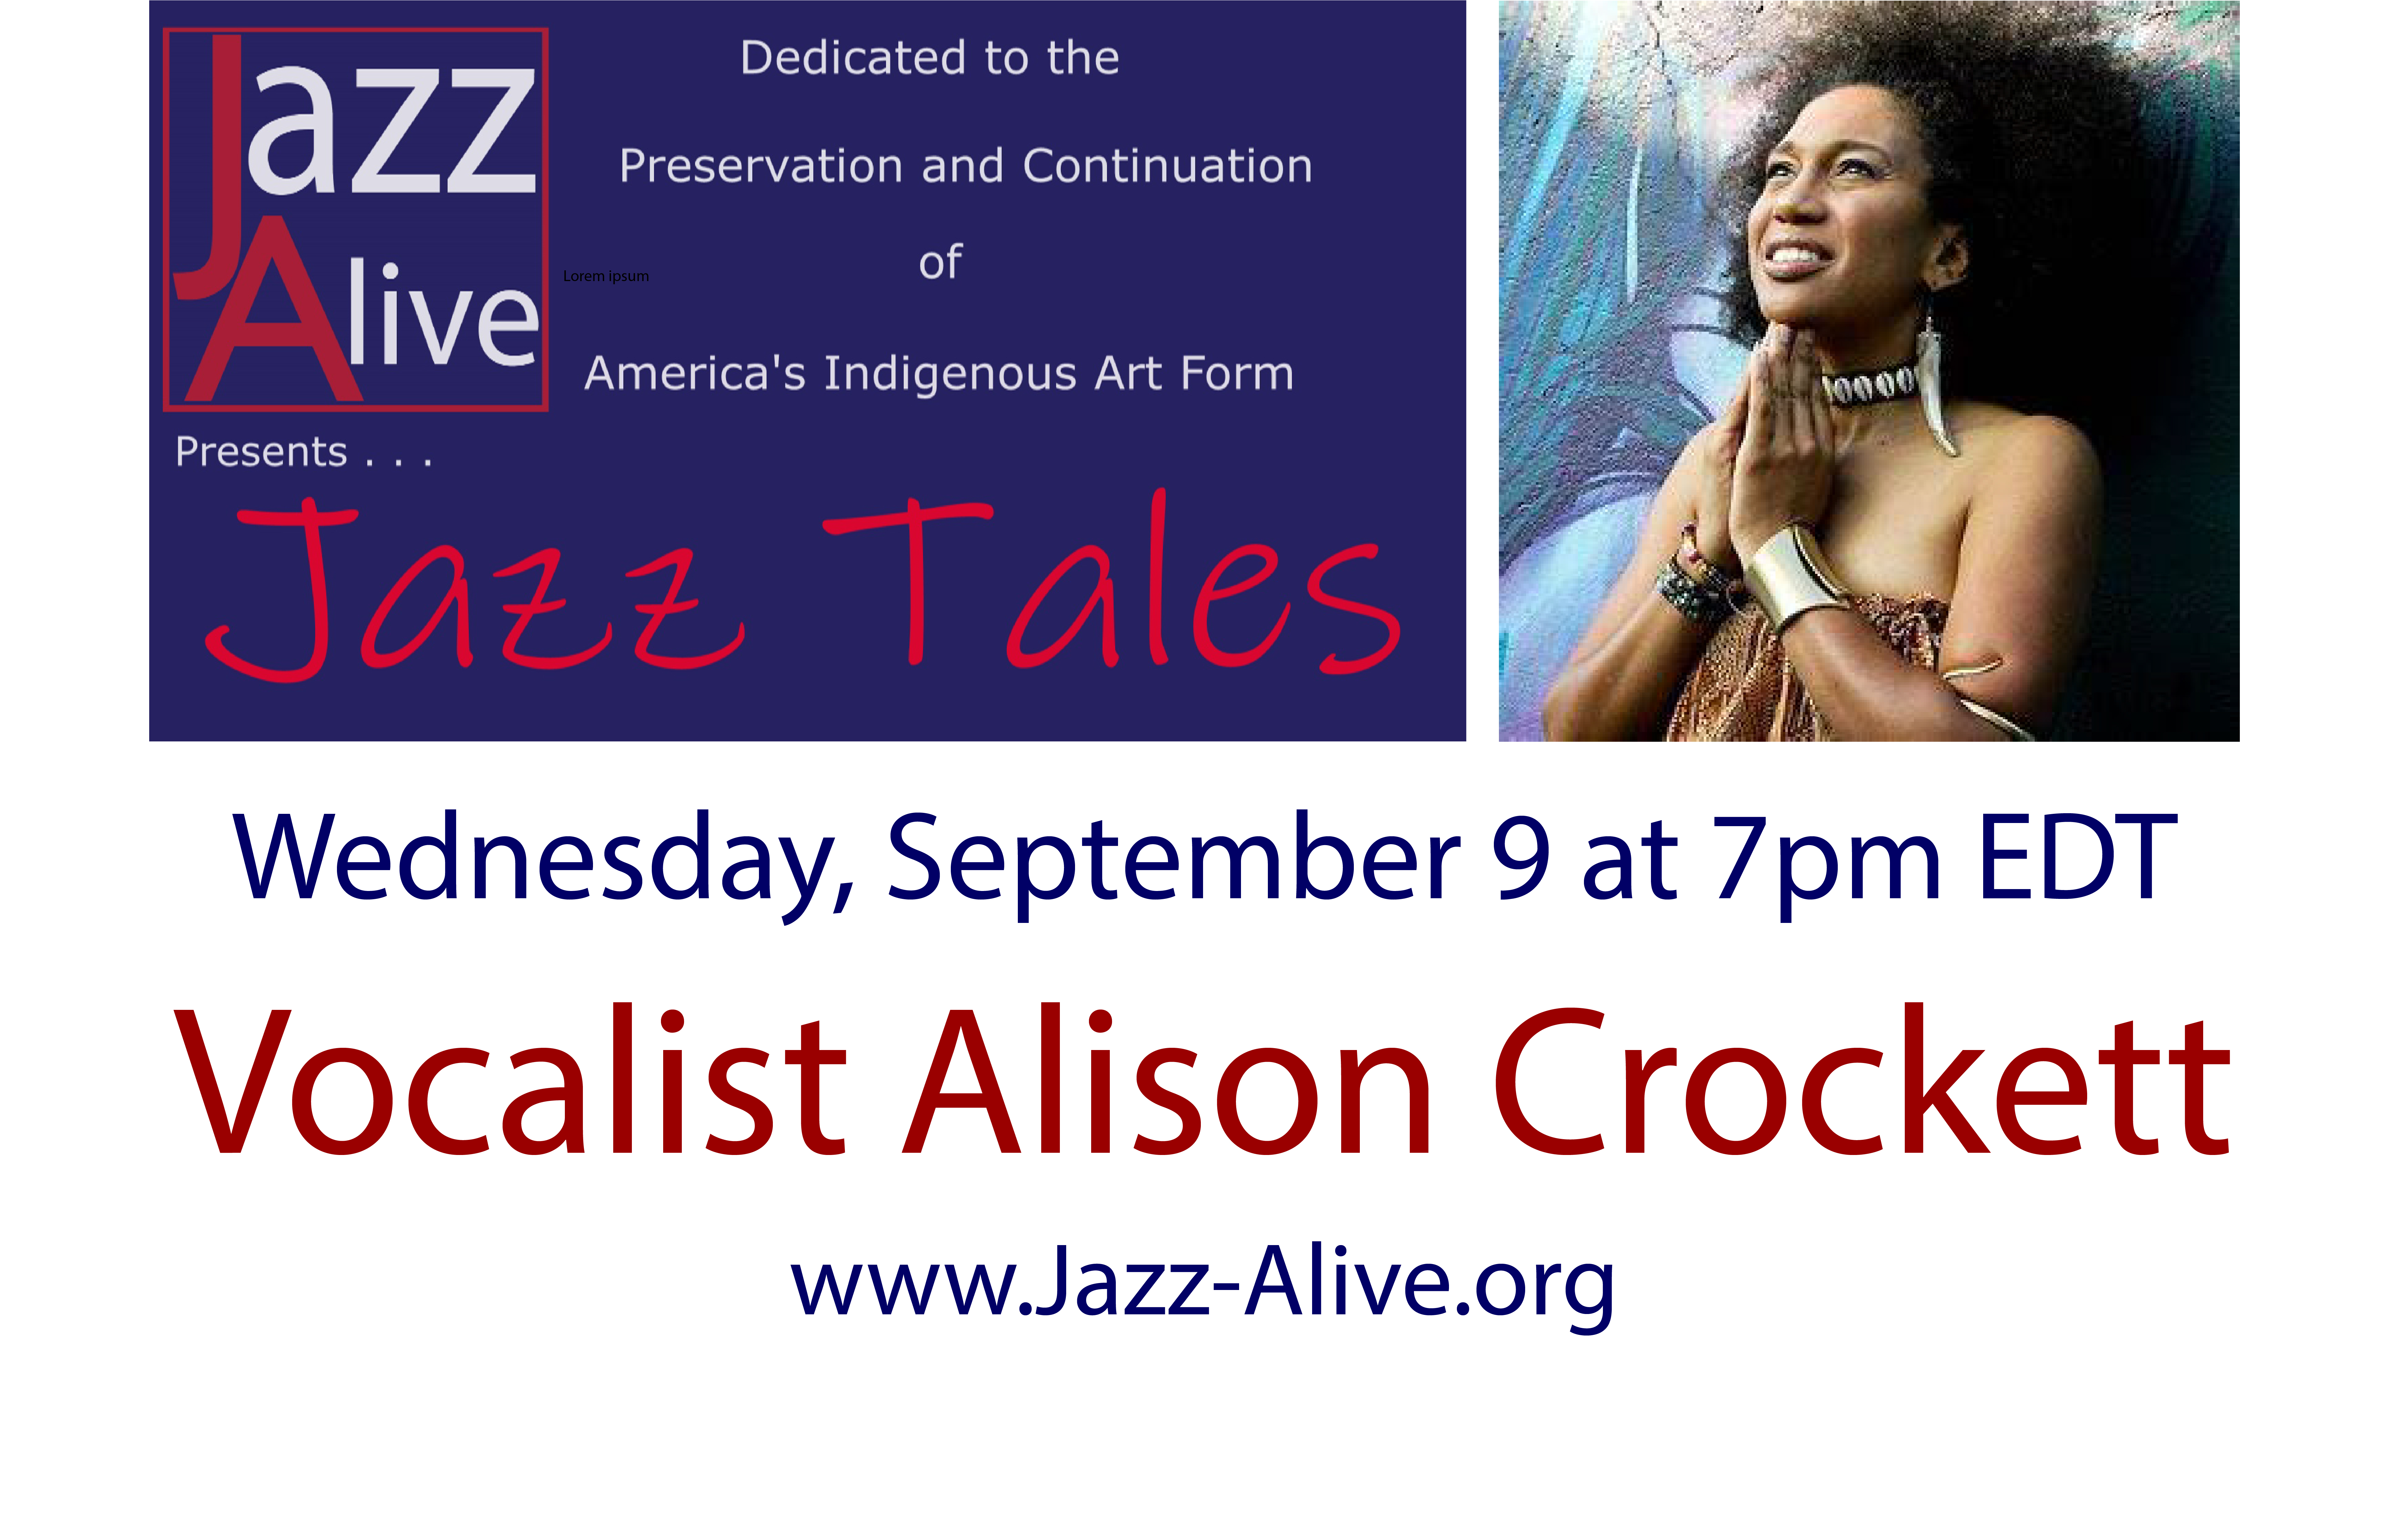 Jazz Tales With Vocalist Alison Crockett